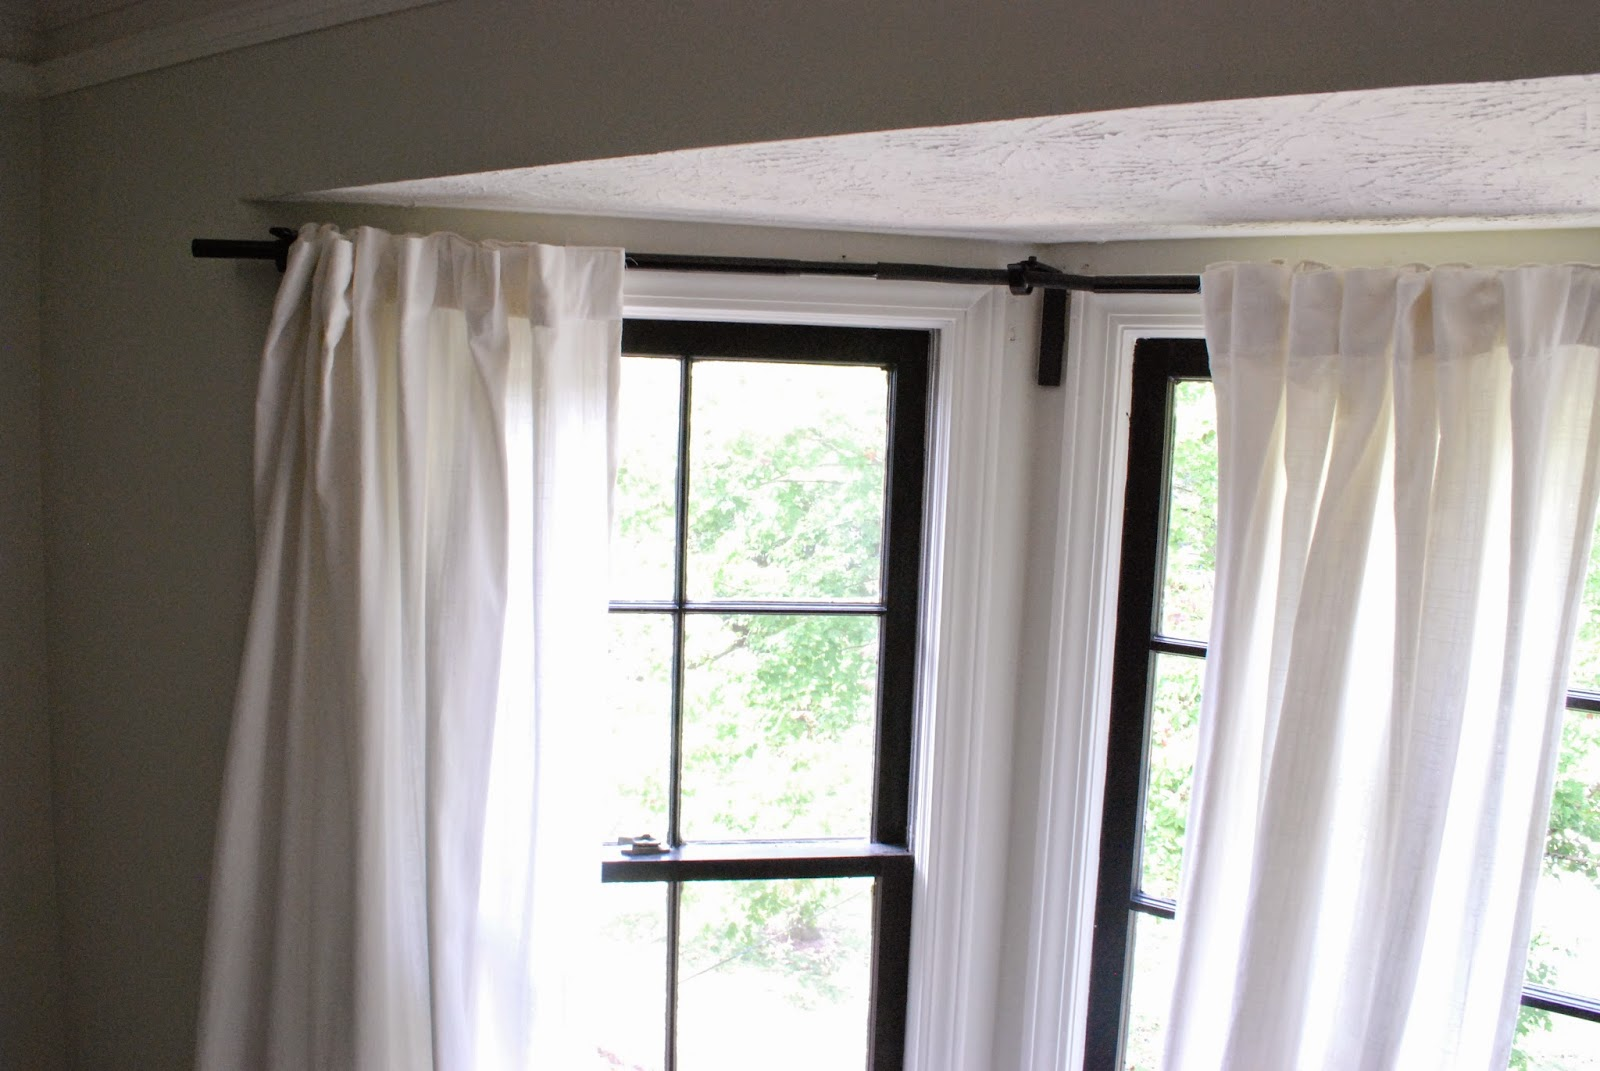 between blue and yellow bay window curtain rod. Black Bedroom Furniture Sets. Home Design Ideas